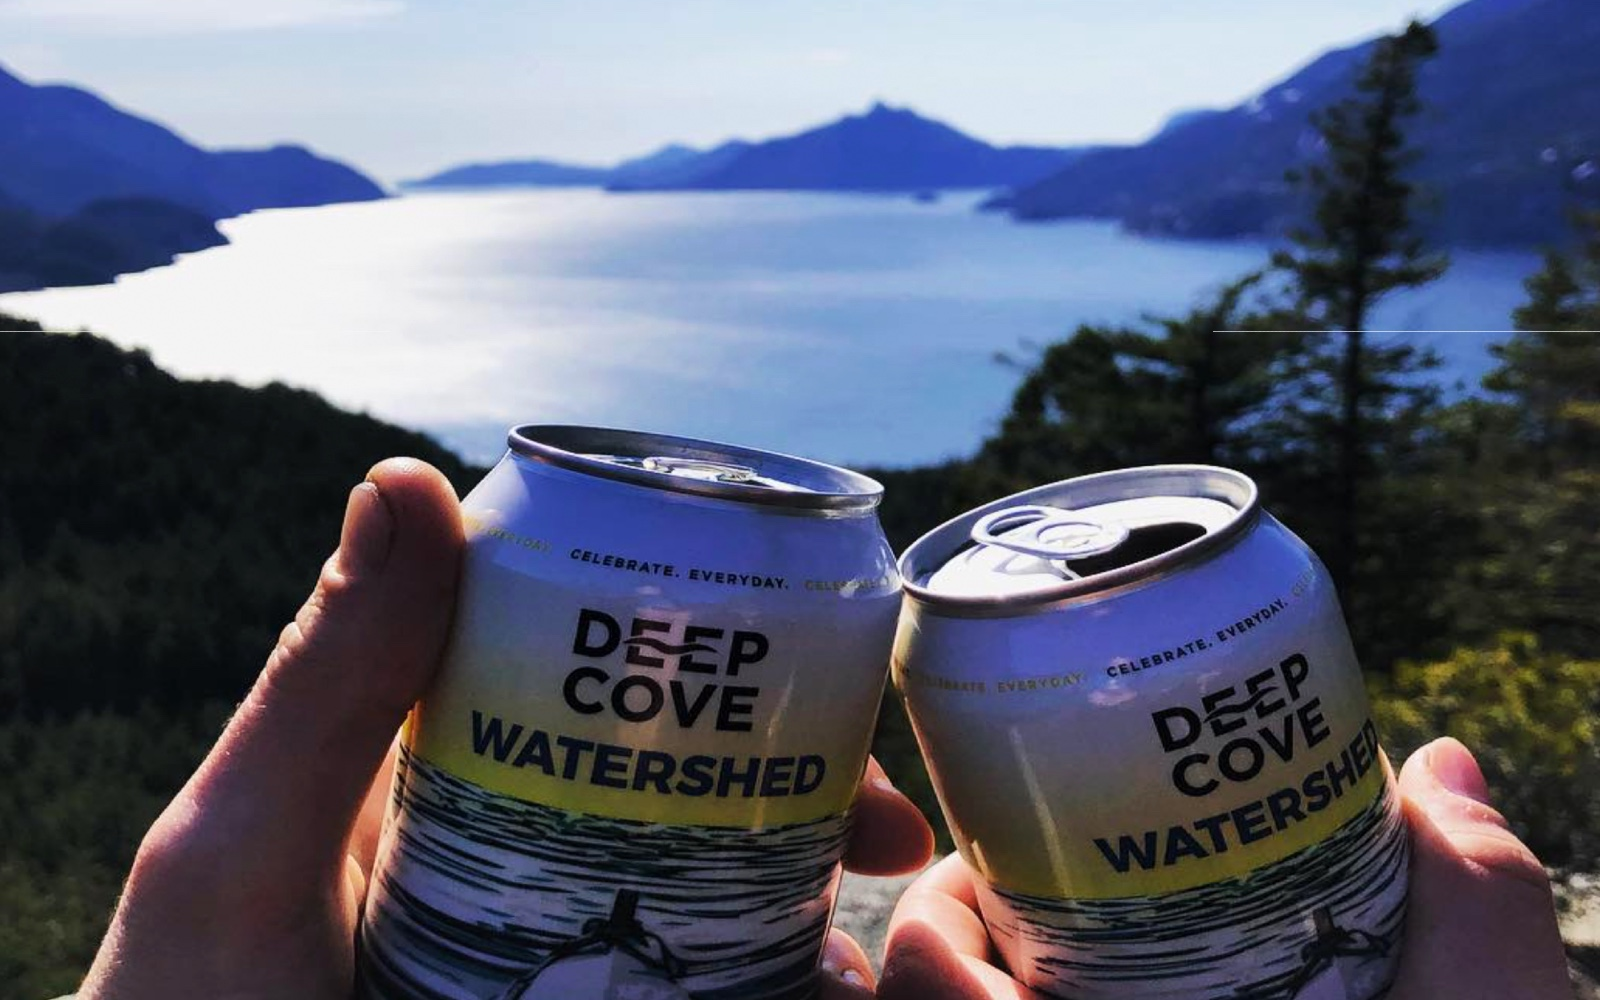 A couple drinks Deep Cove beers while hiking